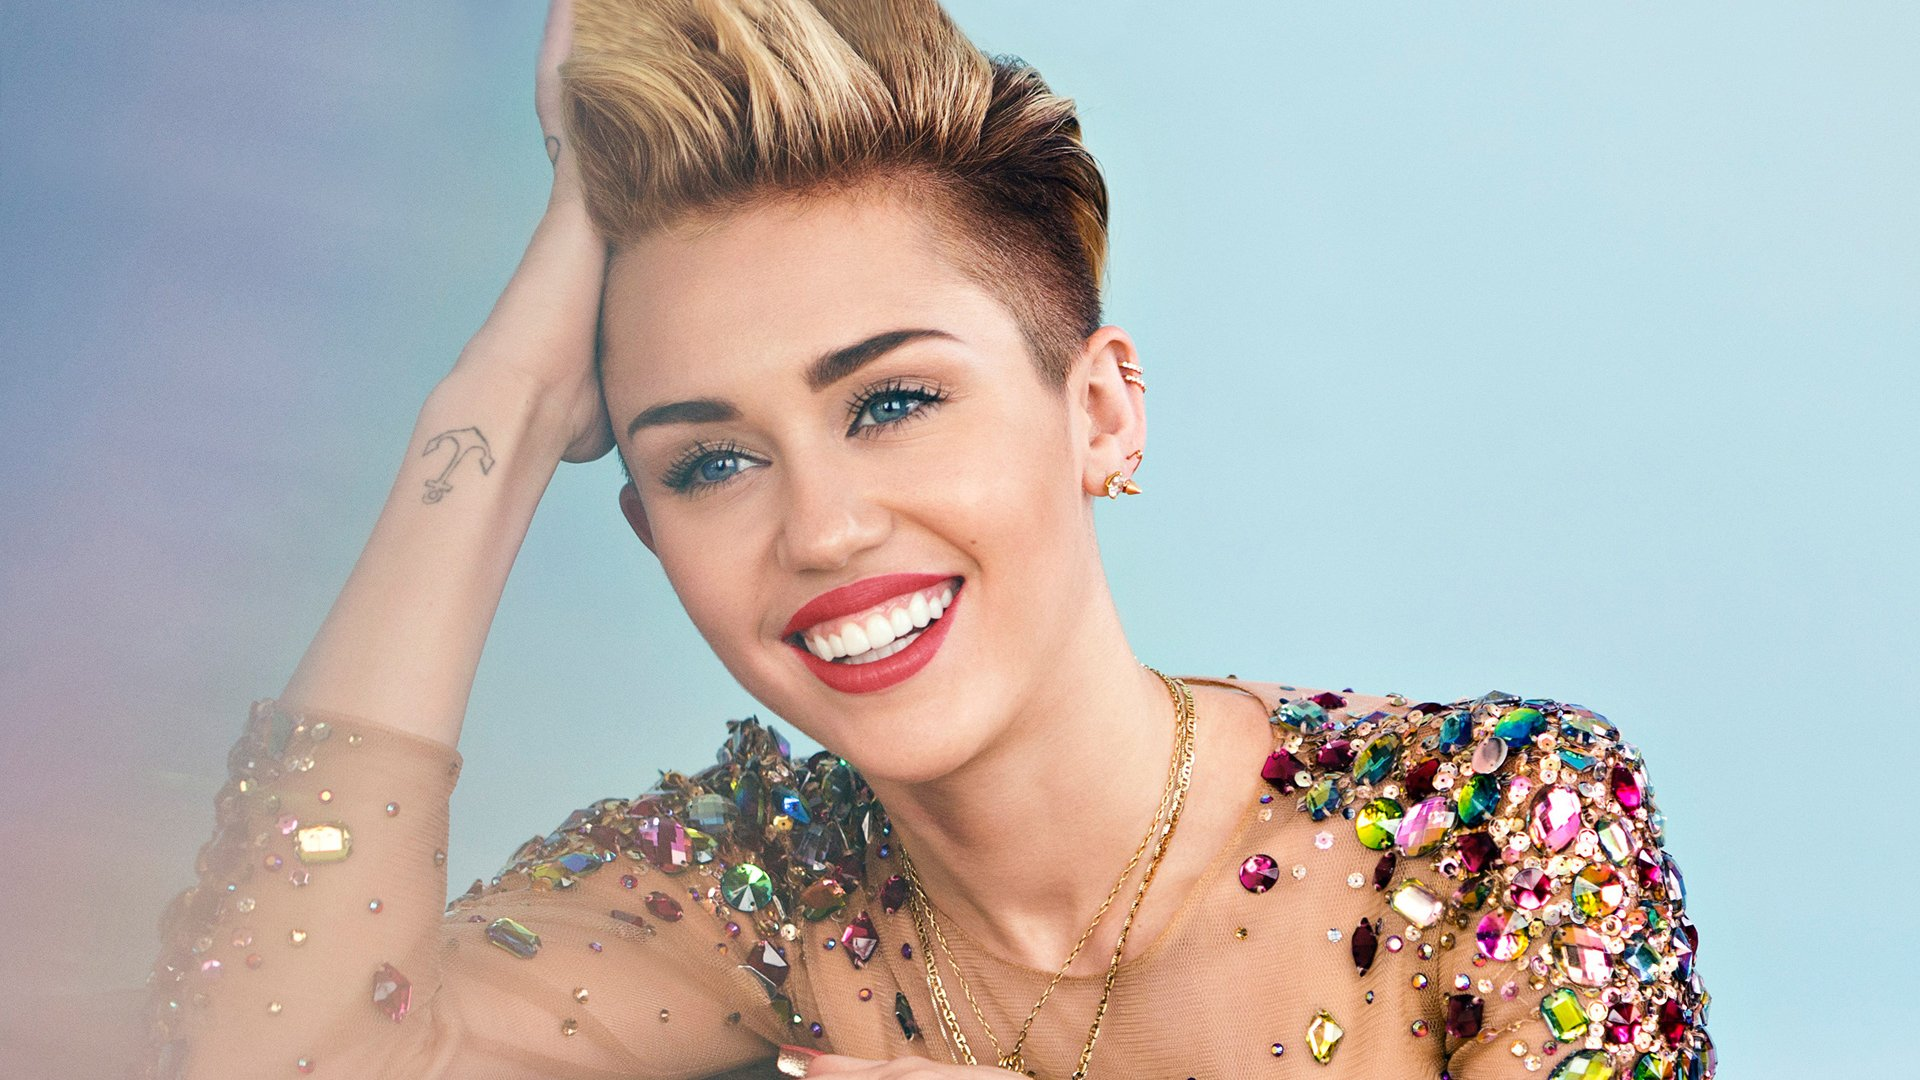 HD Miley Cyrus Wallpapers 01 HdCoolWallpapersCom 1920x1080